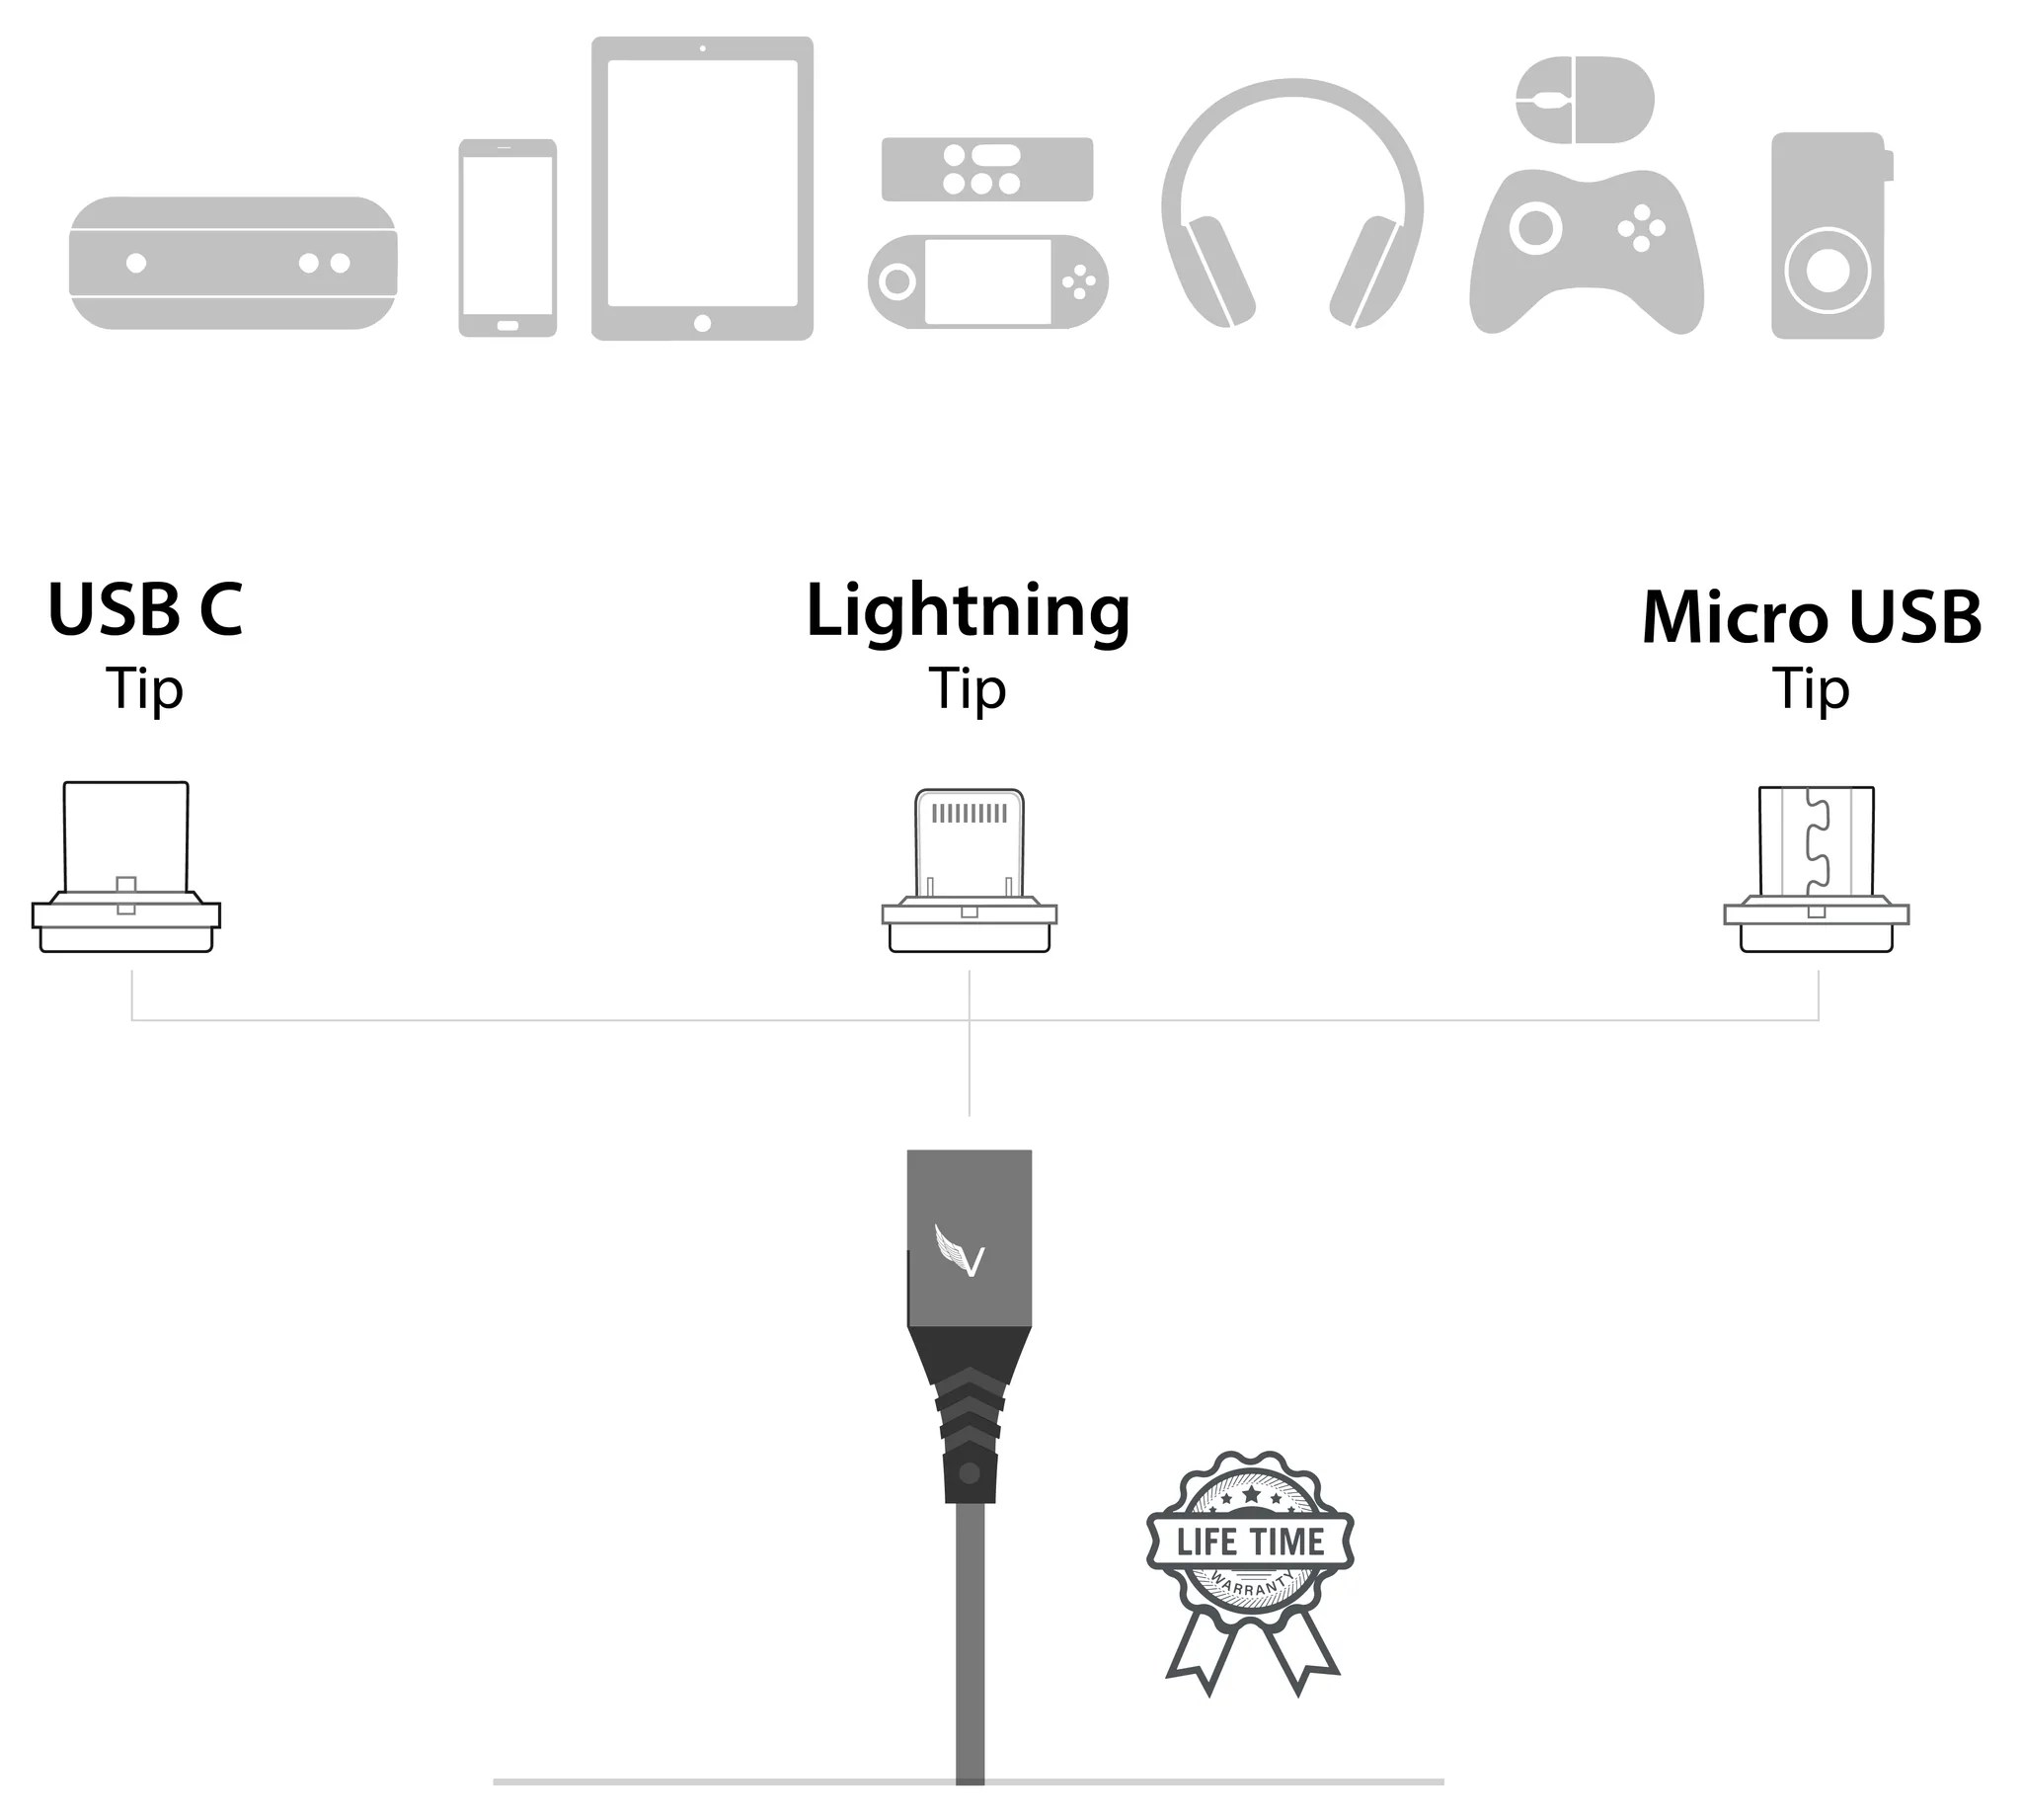 hight resolution of volta 2 0 has redefined what it means to charge multiple devices with one cable it supports charging and data transfer on a wide range of devices